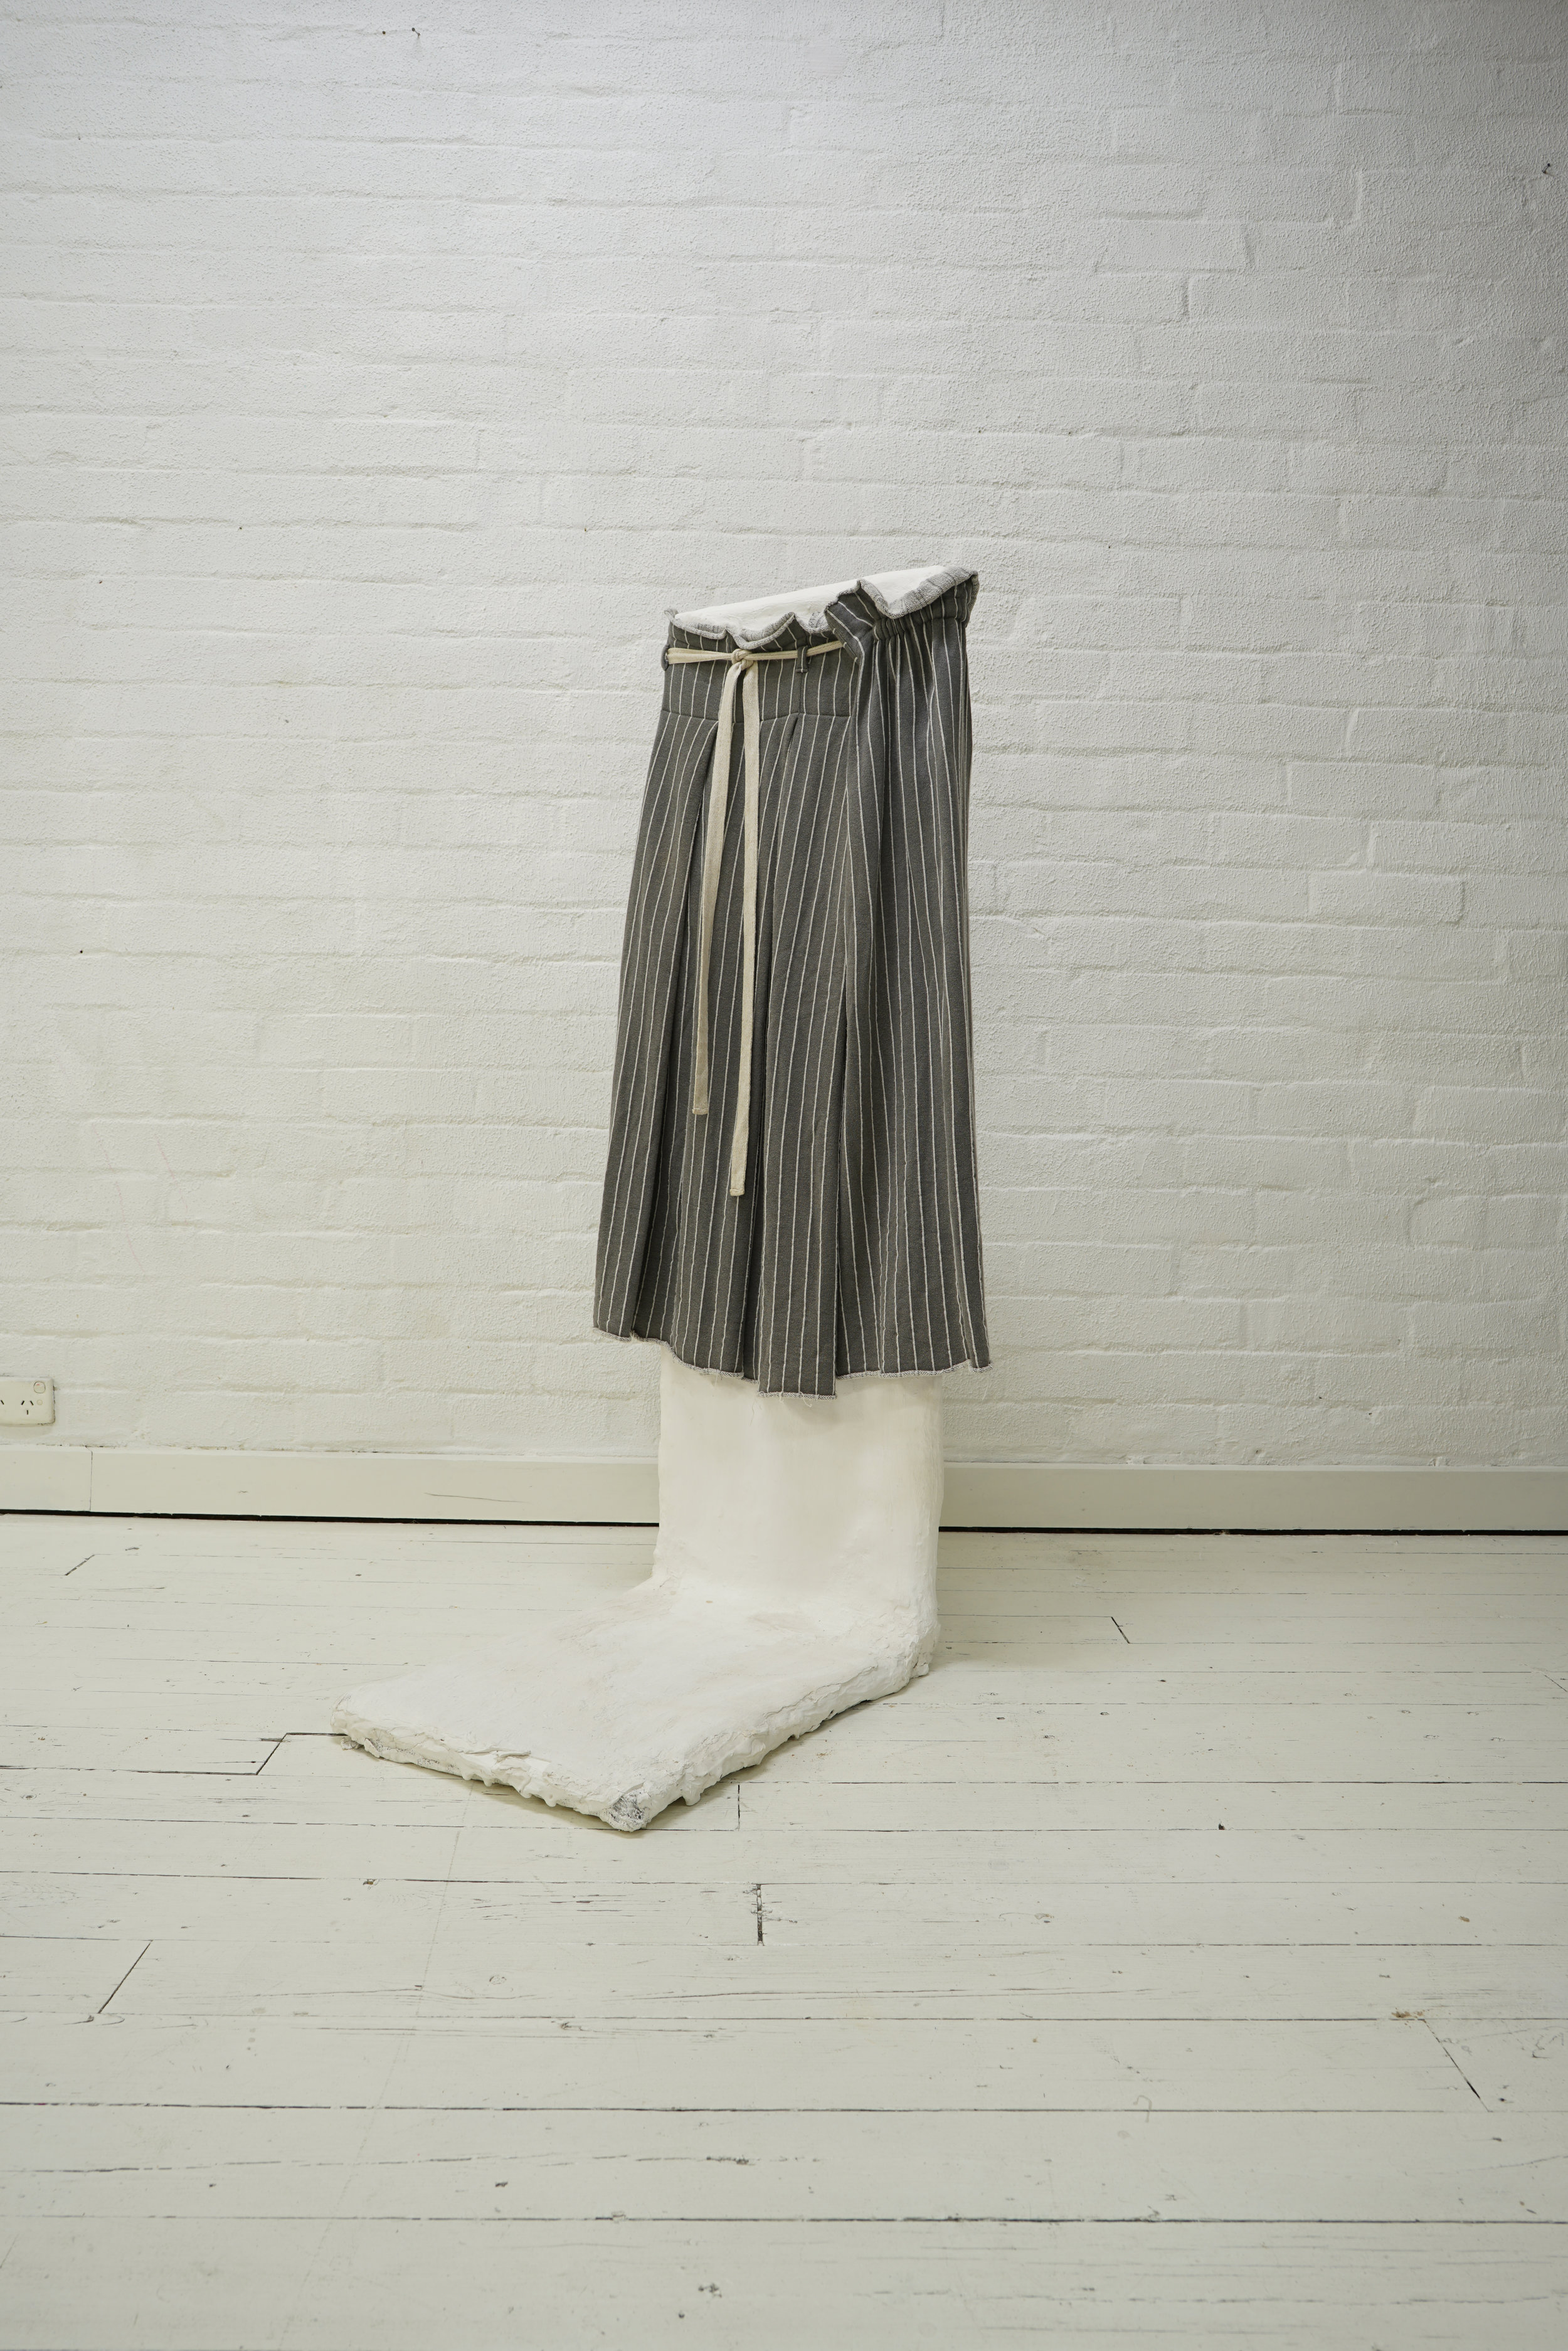 y's grey stripe waist tie flared pleat skirt  from the filter store collection